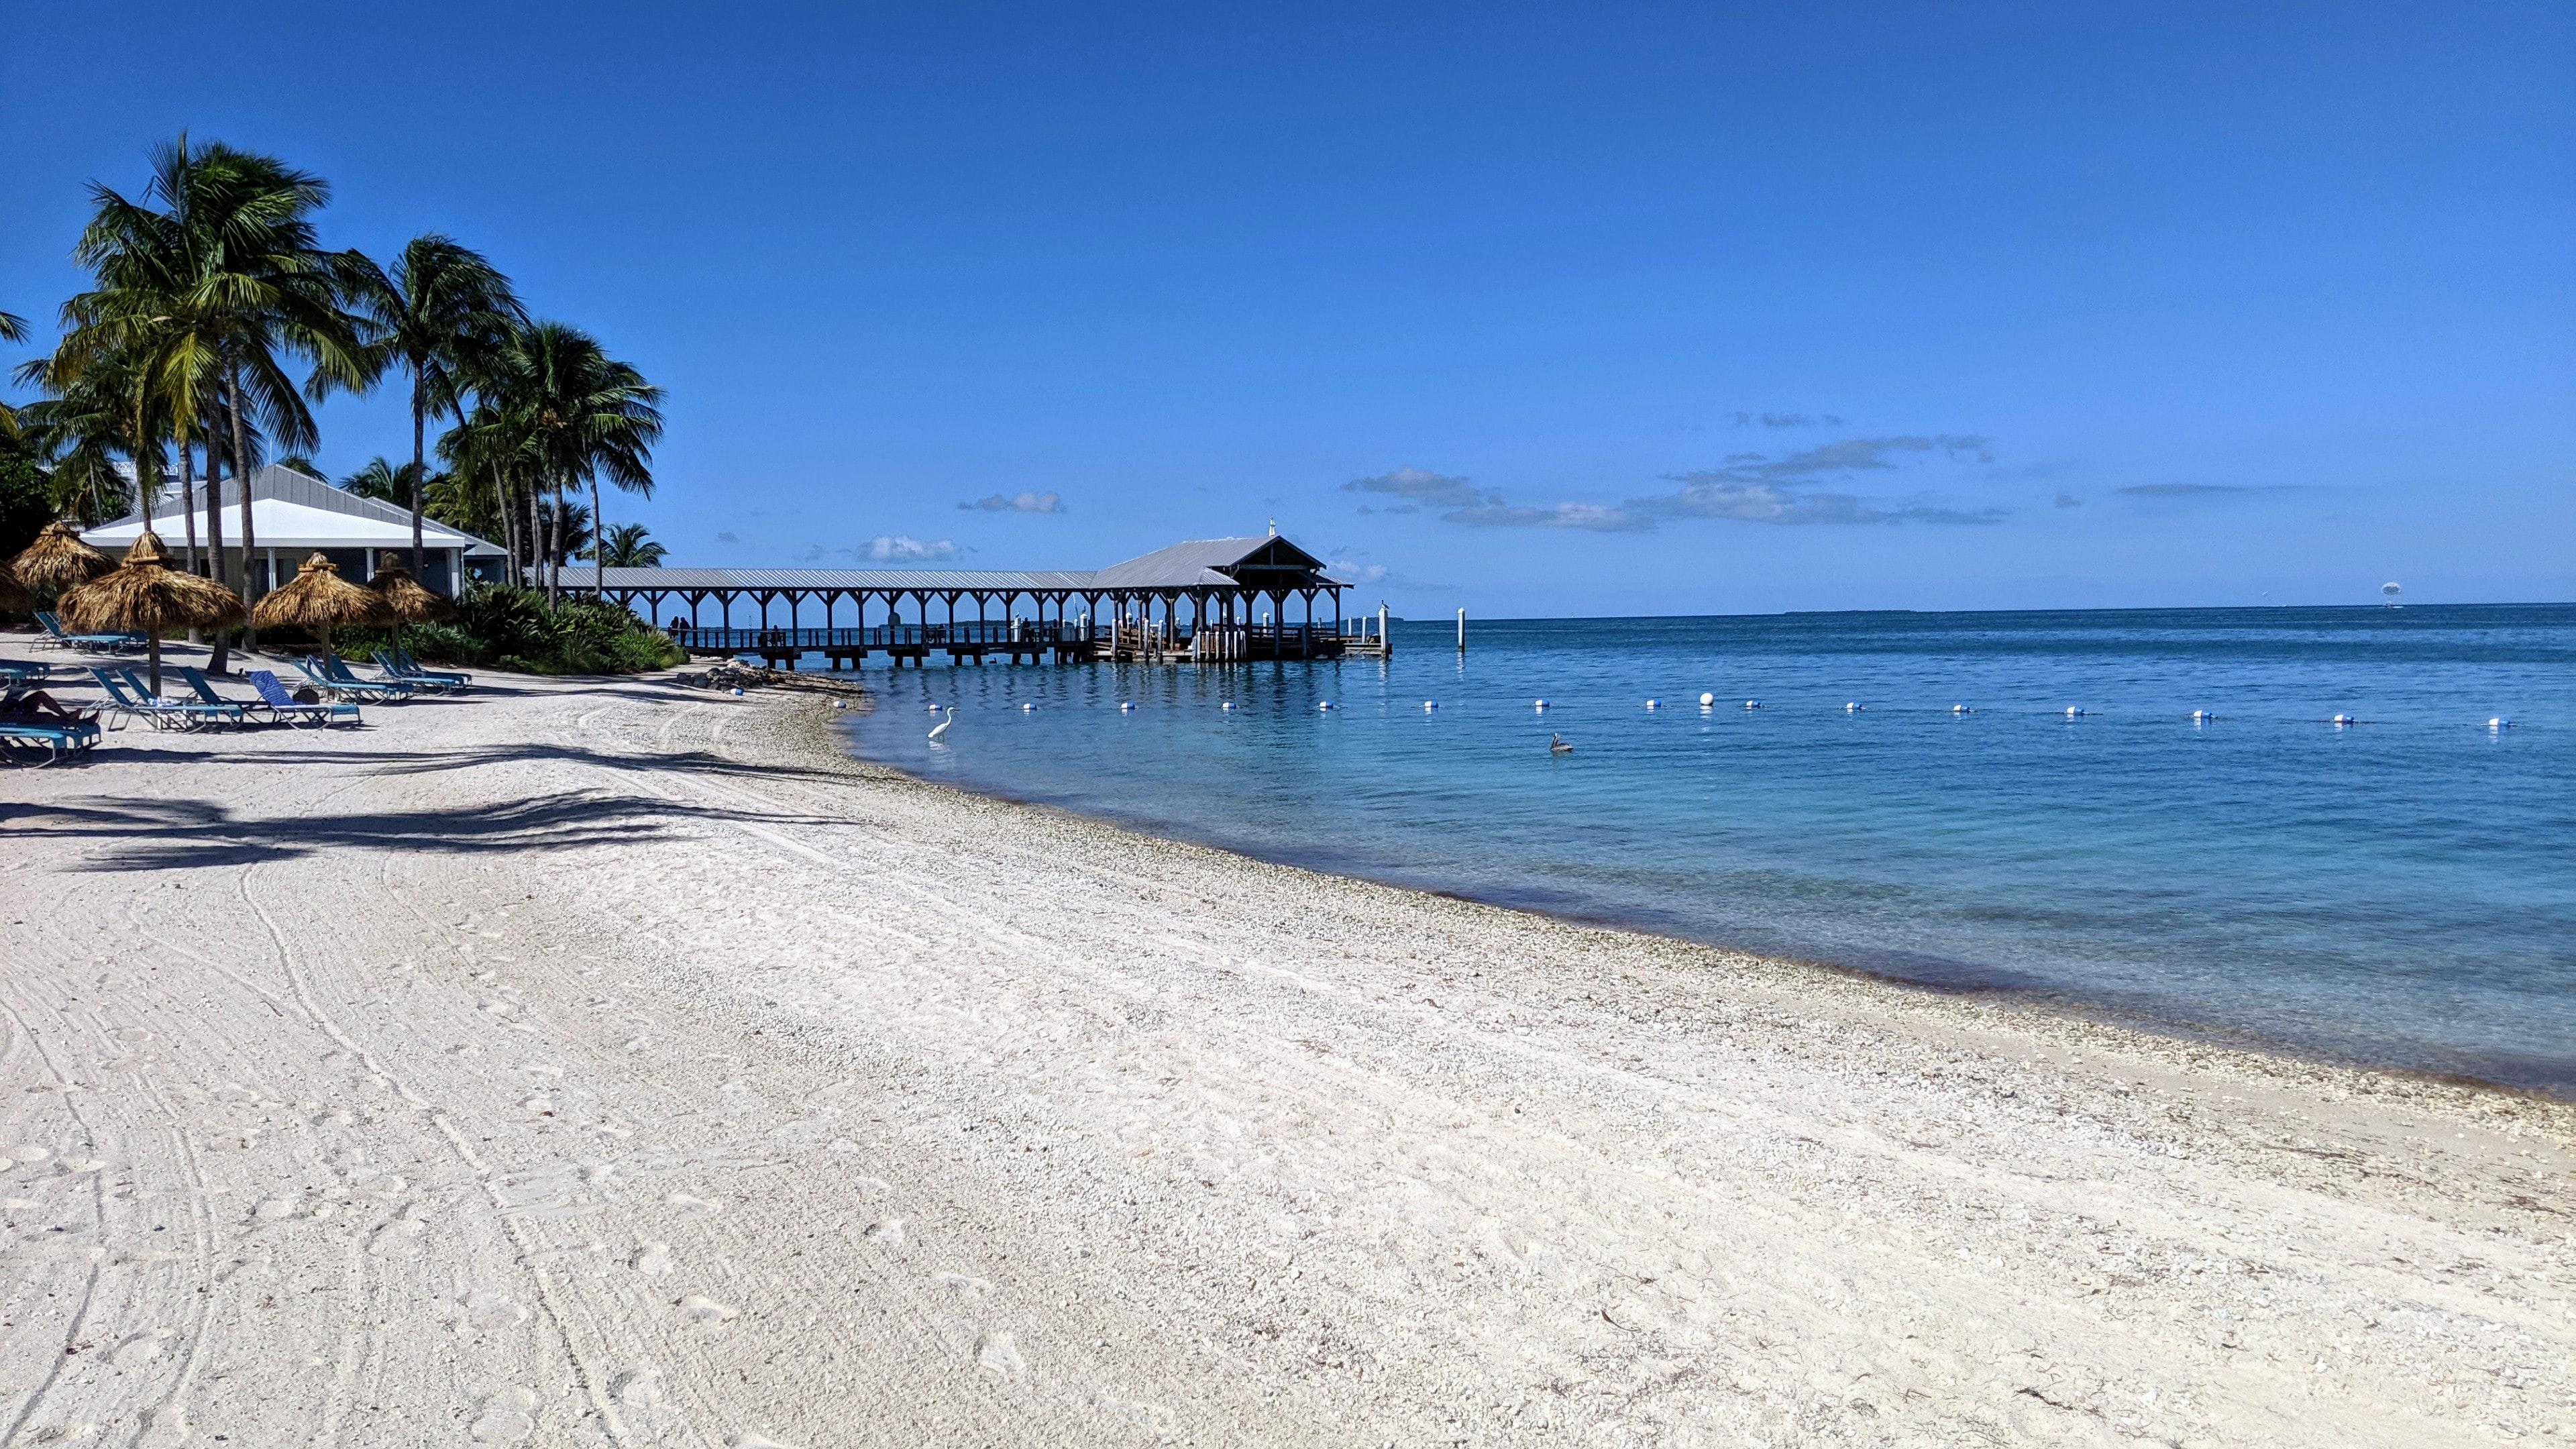 Carribean Vibes in the United States with a Florida Keys Honeymoon